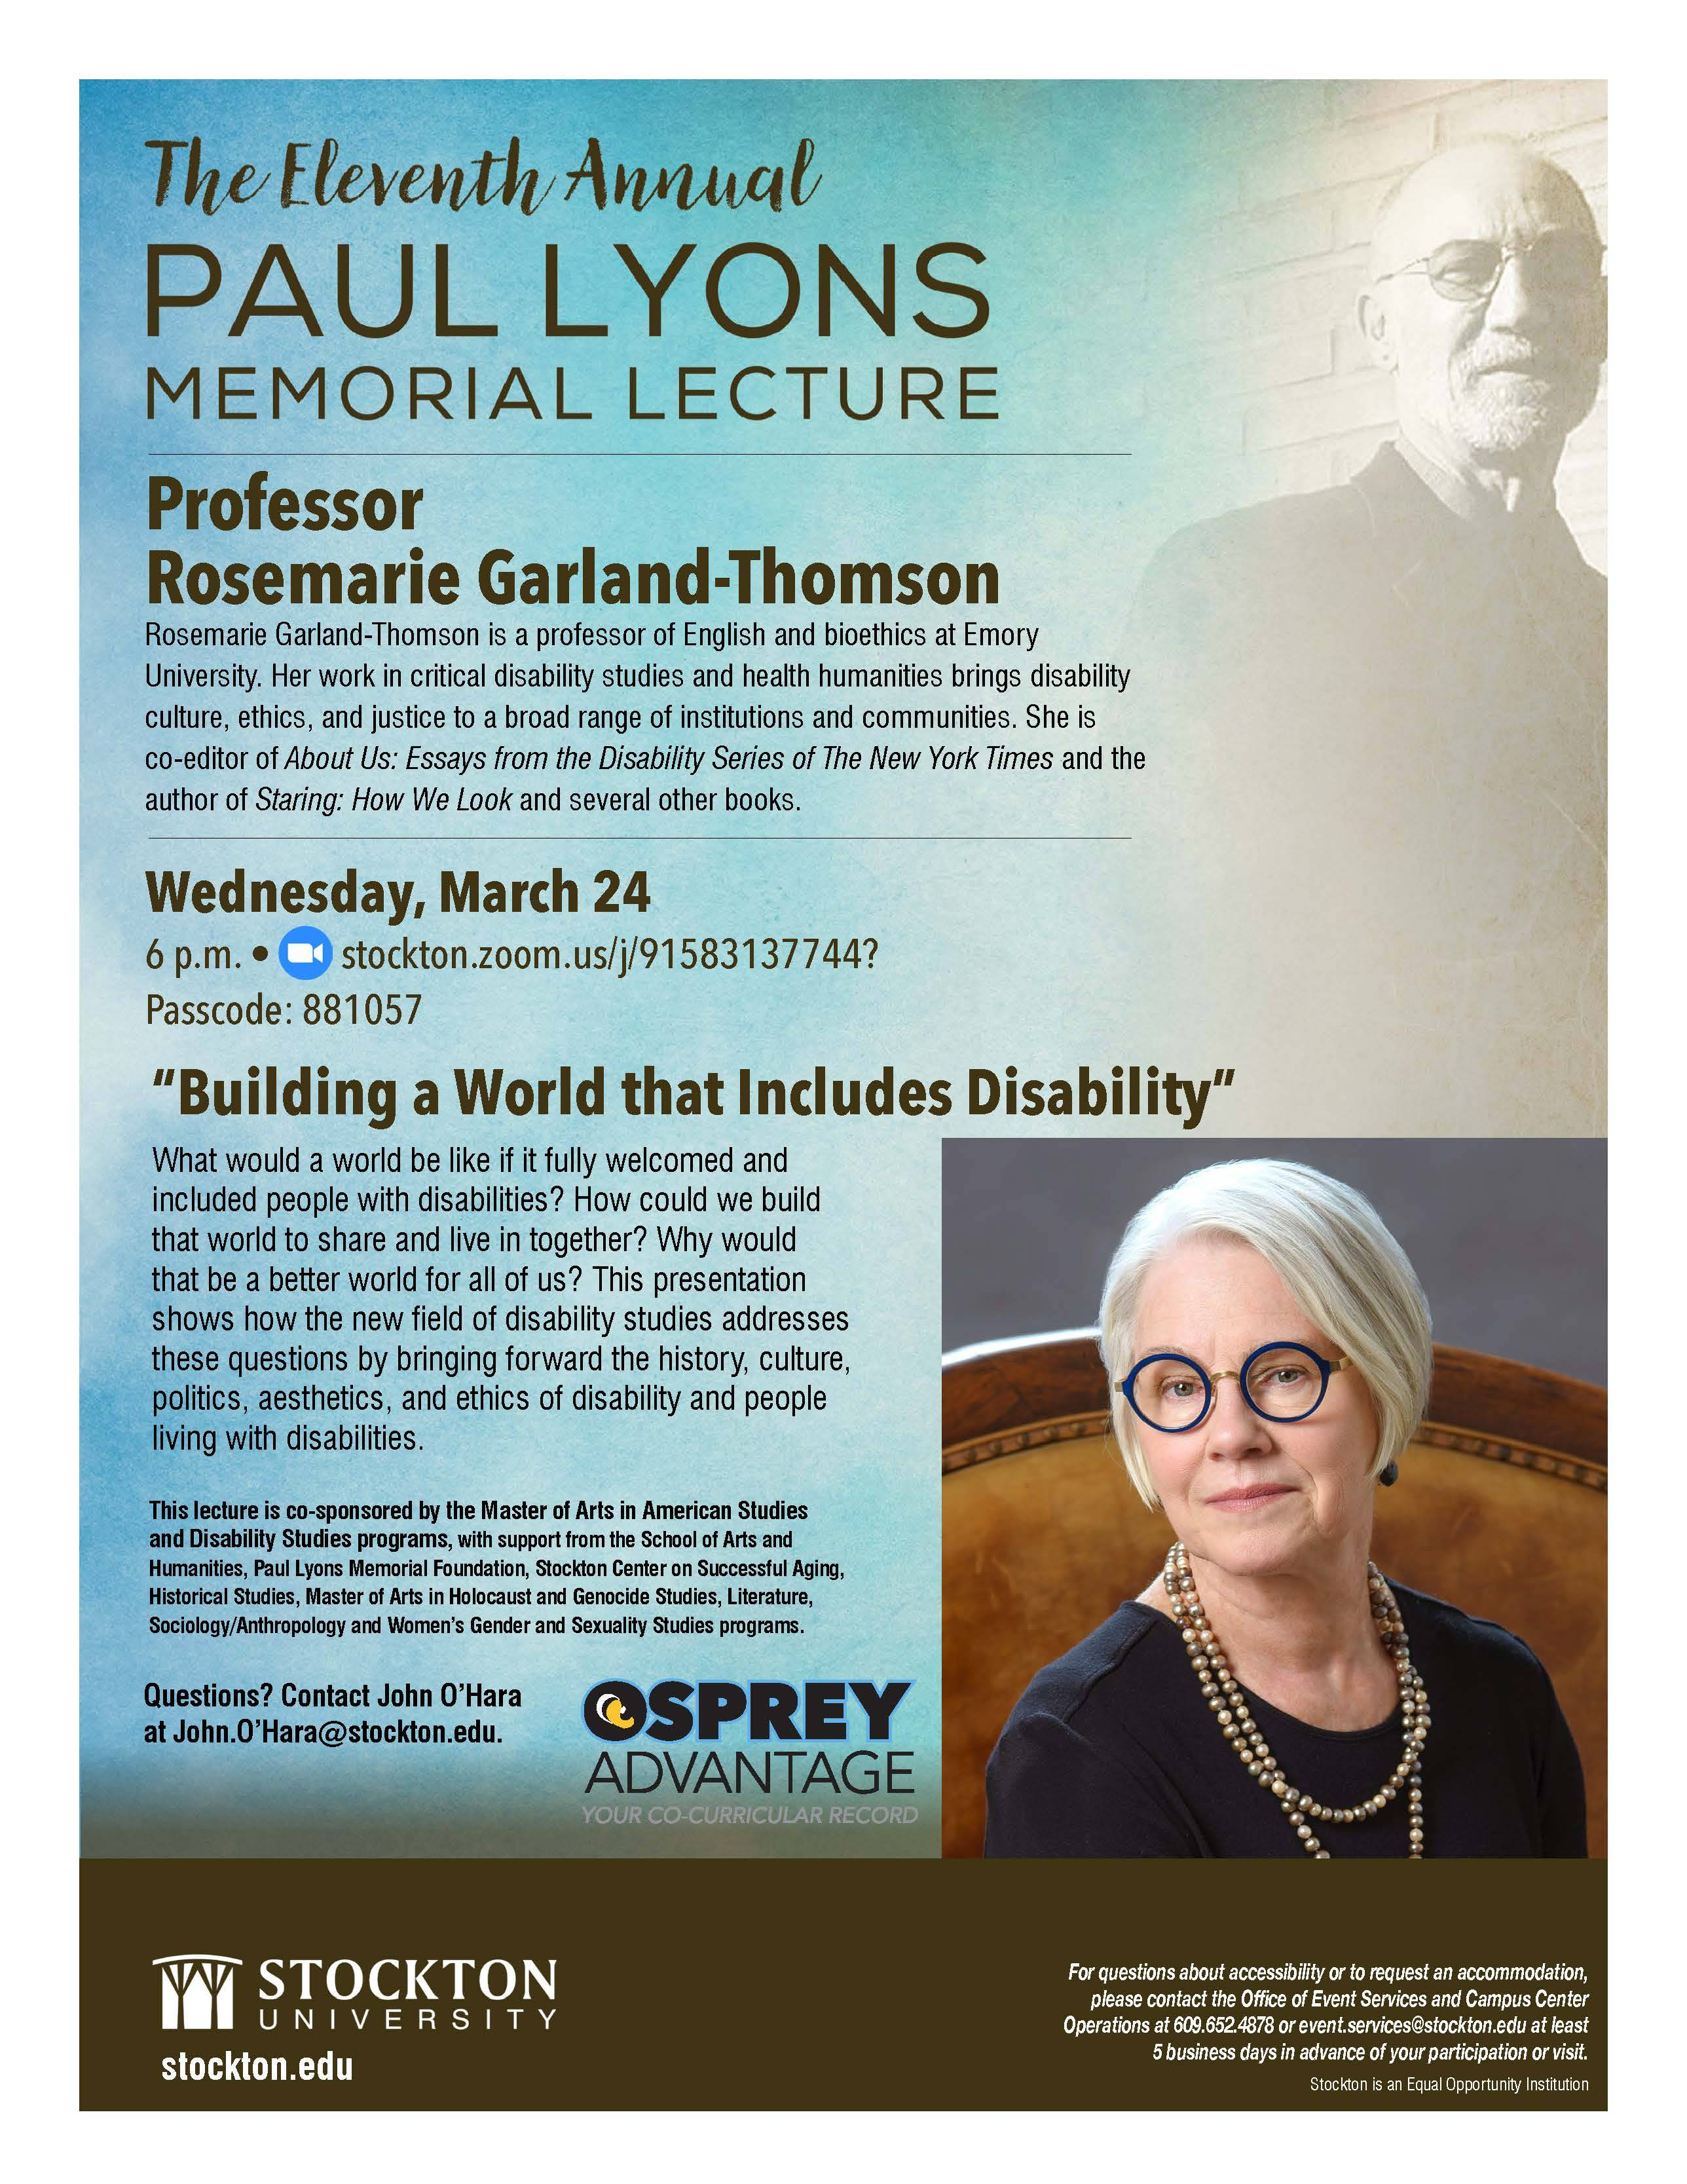 "The Eleventh Annual Paul Lyons Memorial Lecture on Wednesday, March 24, 2021 at 6 p.m. via Zoom features guest speaker Rosemarie Garland-Thomson on ""Building a World that Includes Disability""."